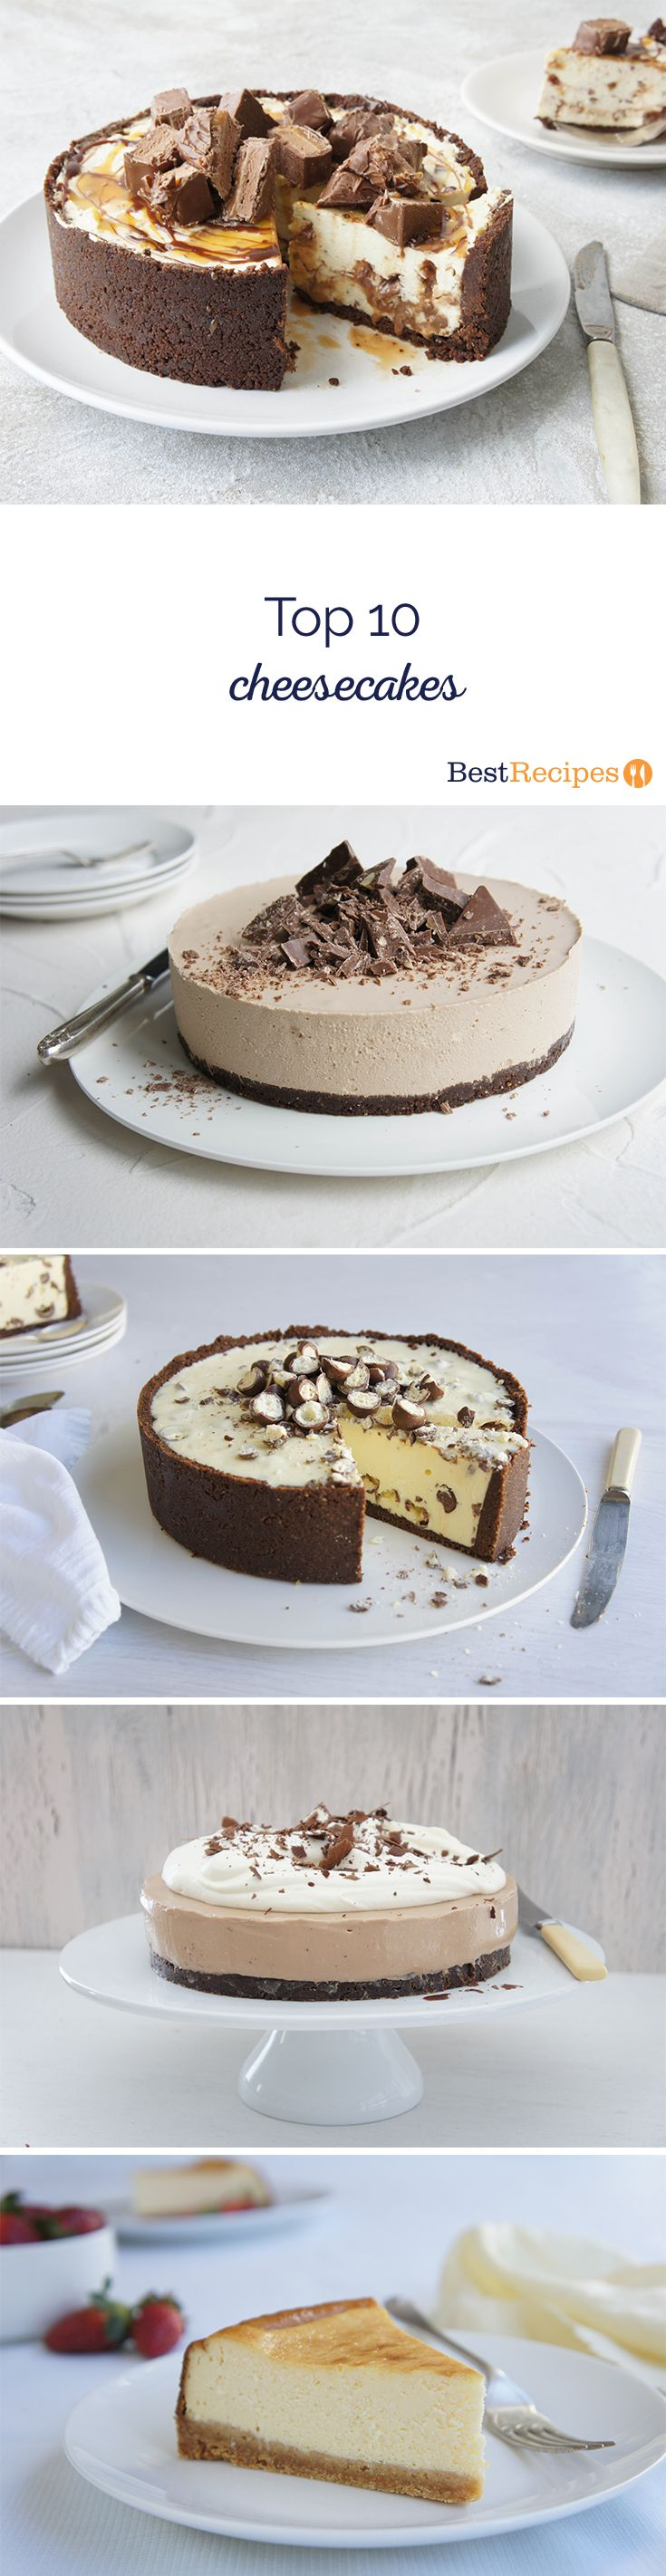 Top 10 Cheesecakes